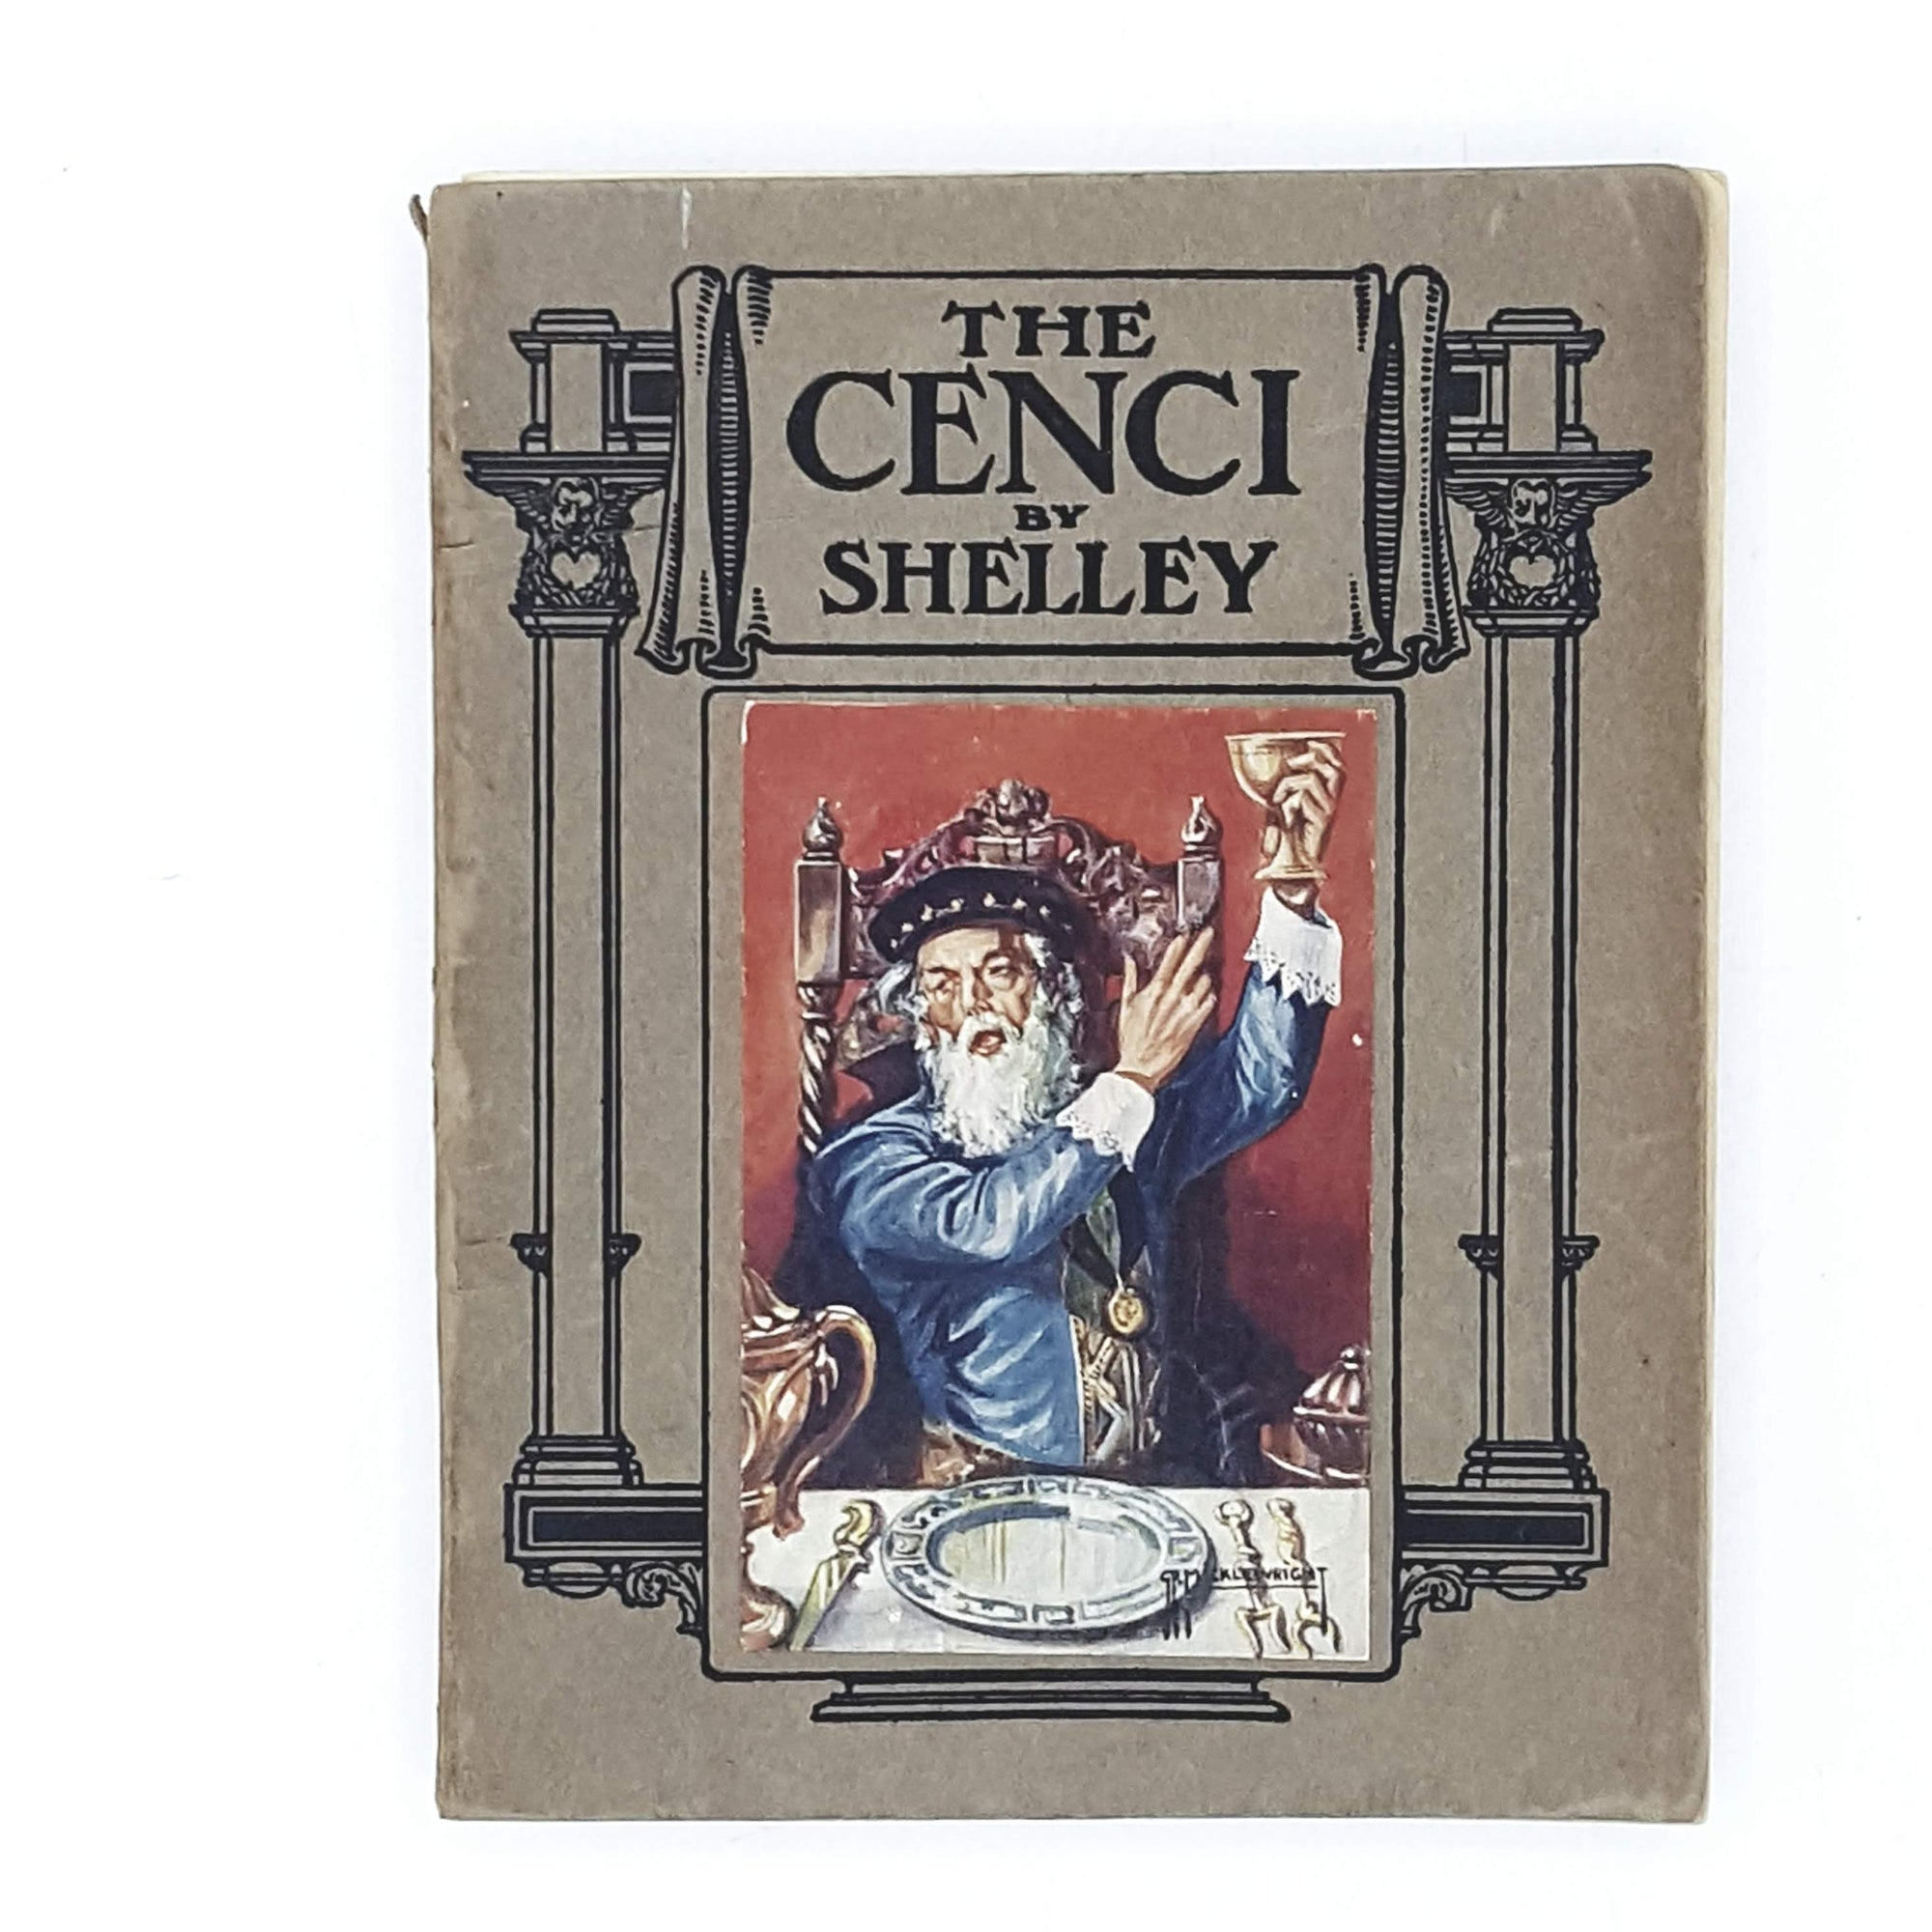 Percy Bysshe Shelley's The Cenci 1928